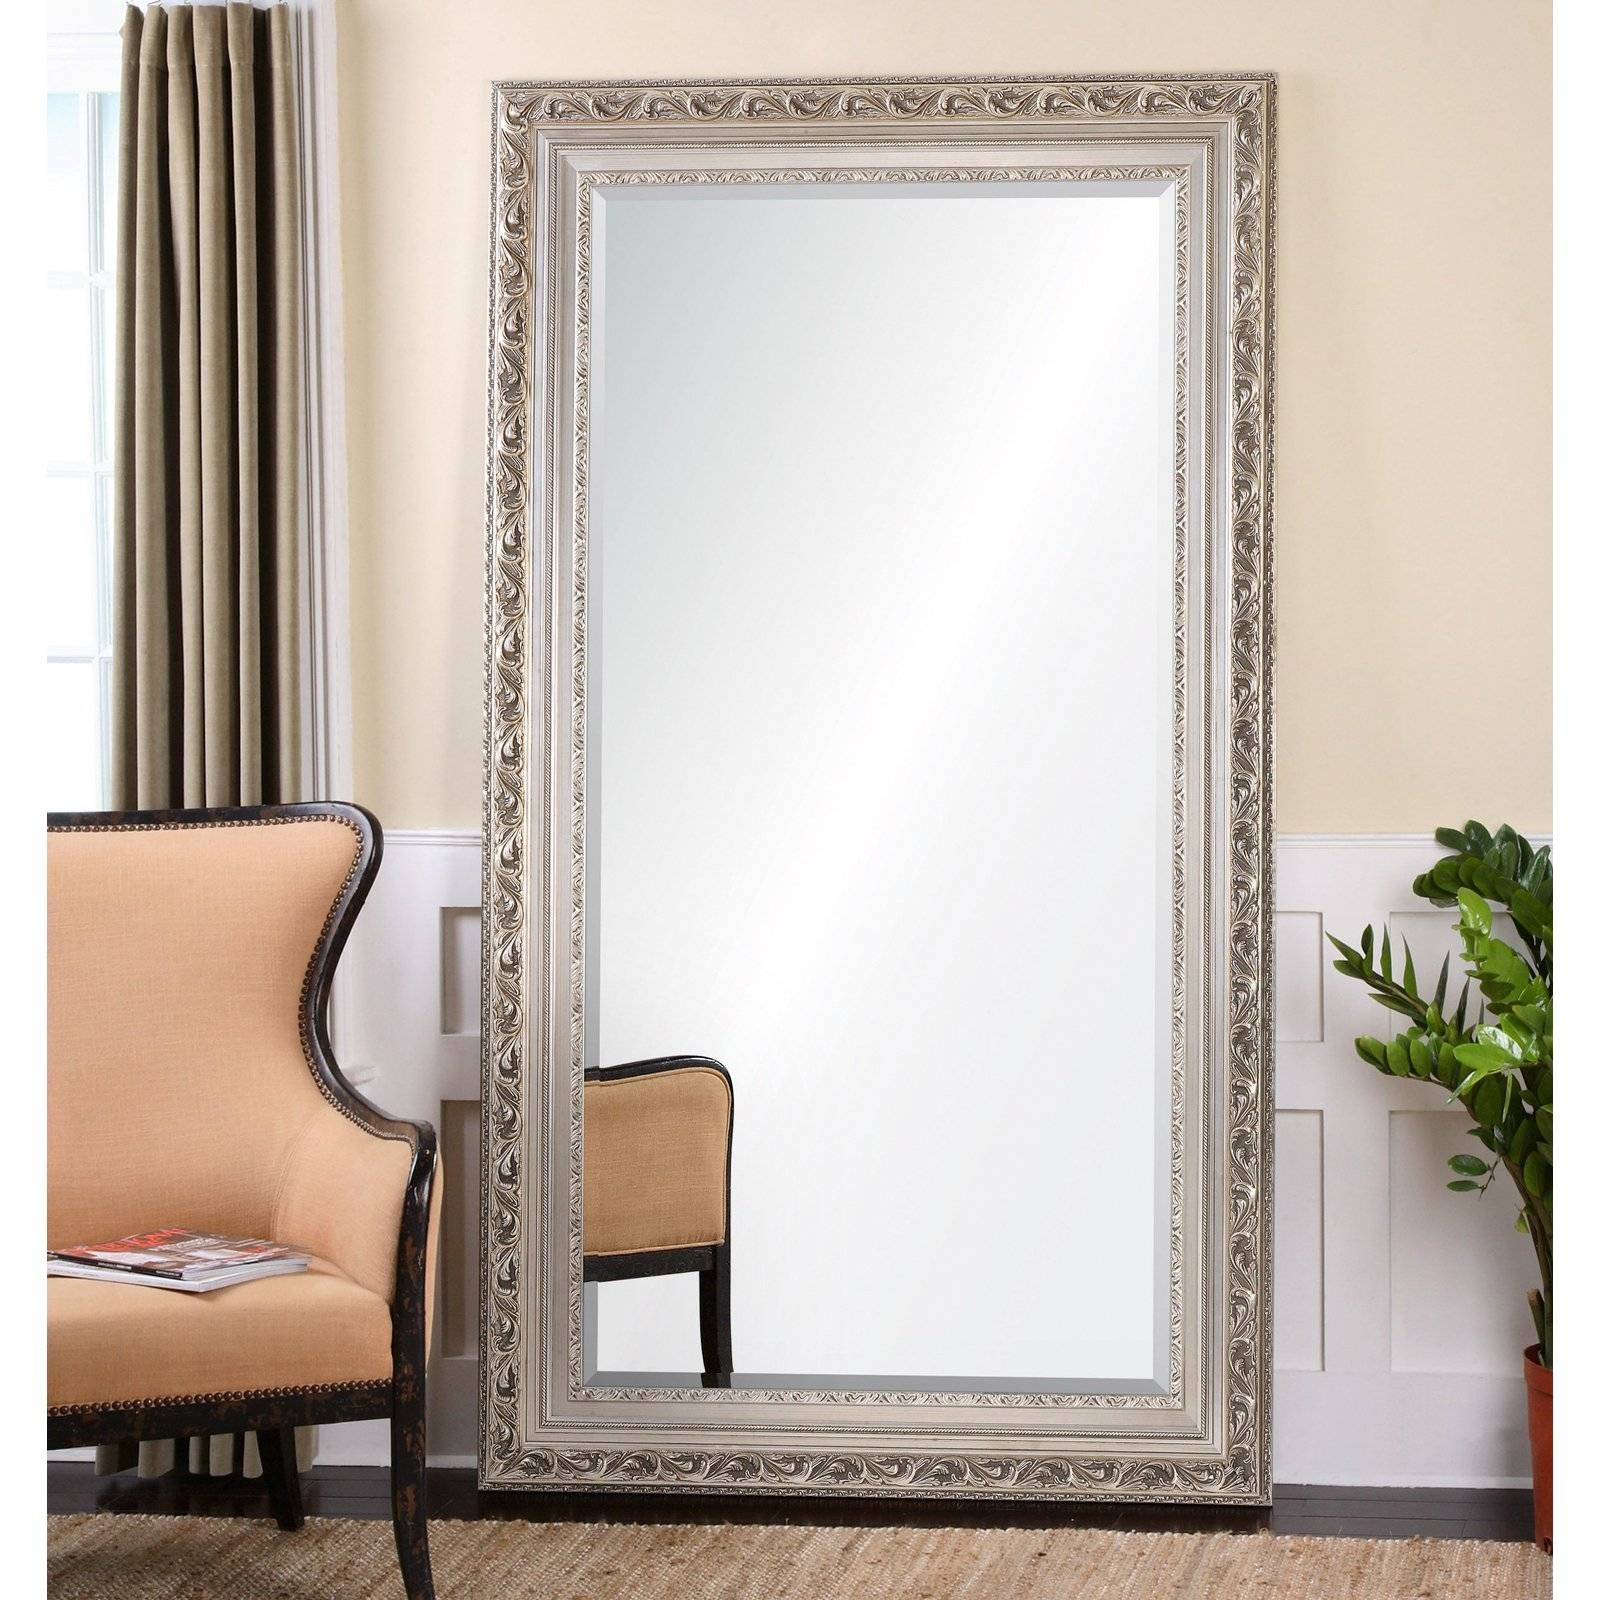 Large Leaning Floor Mirrors – Harpsounds.co intended for Large Floor Mirrors (Image 18 of 20)